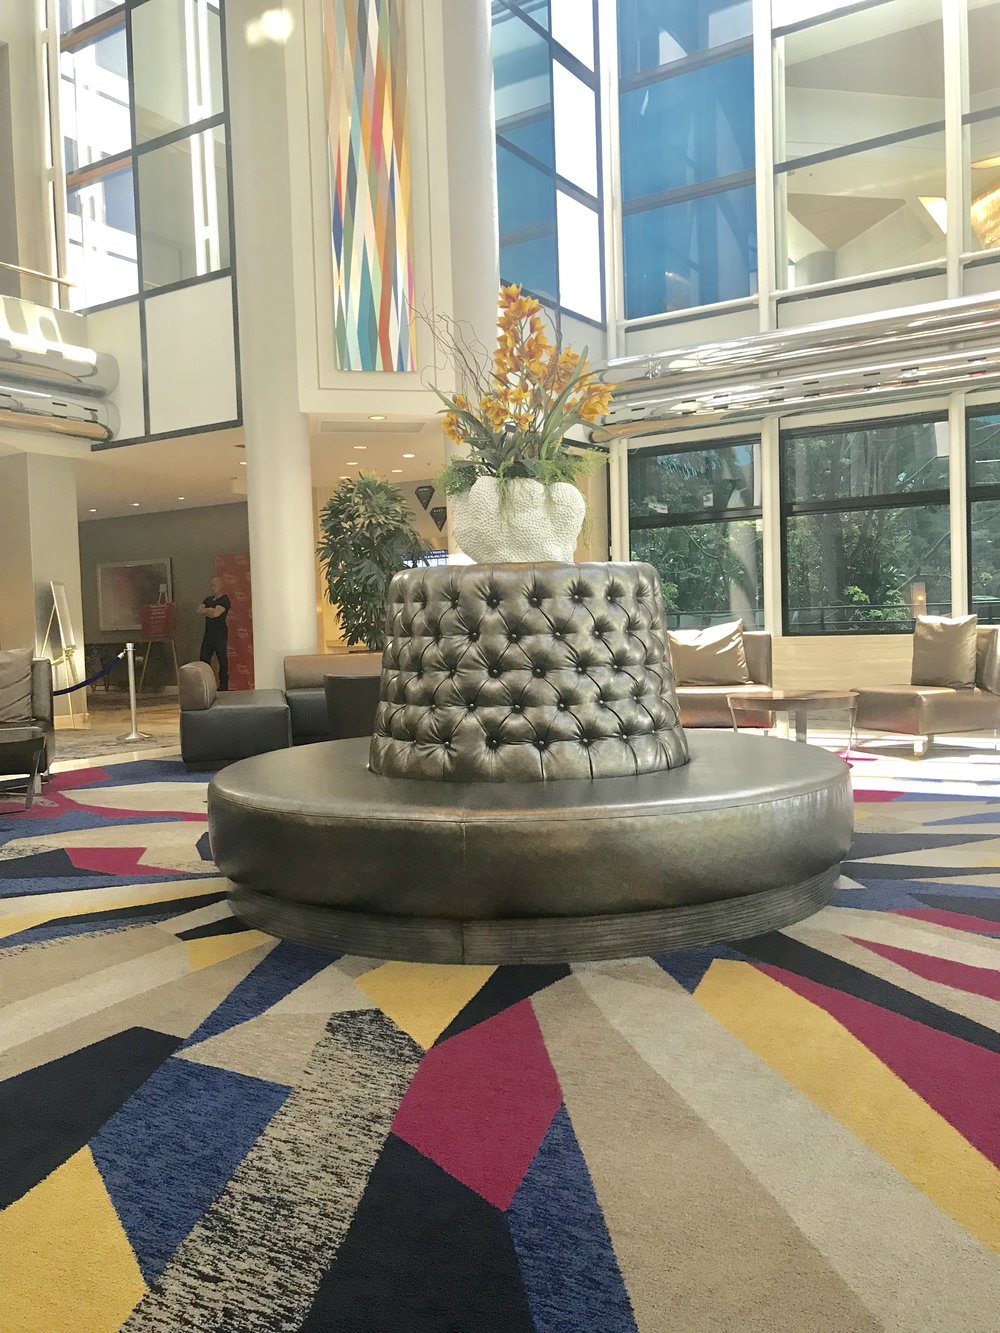 Lobby at Hilton Universal - Hotel has 495 Guest Rooms